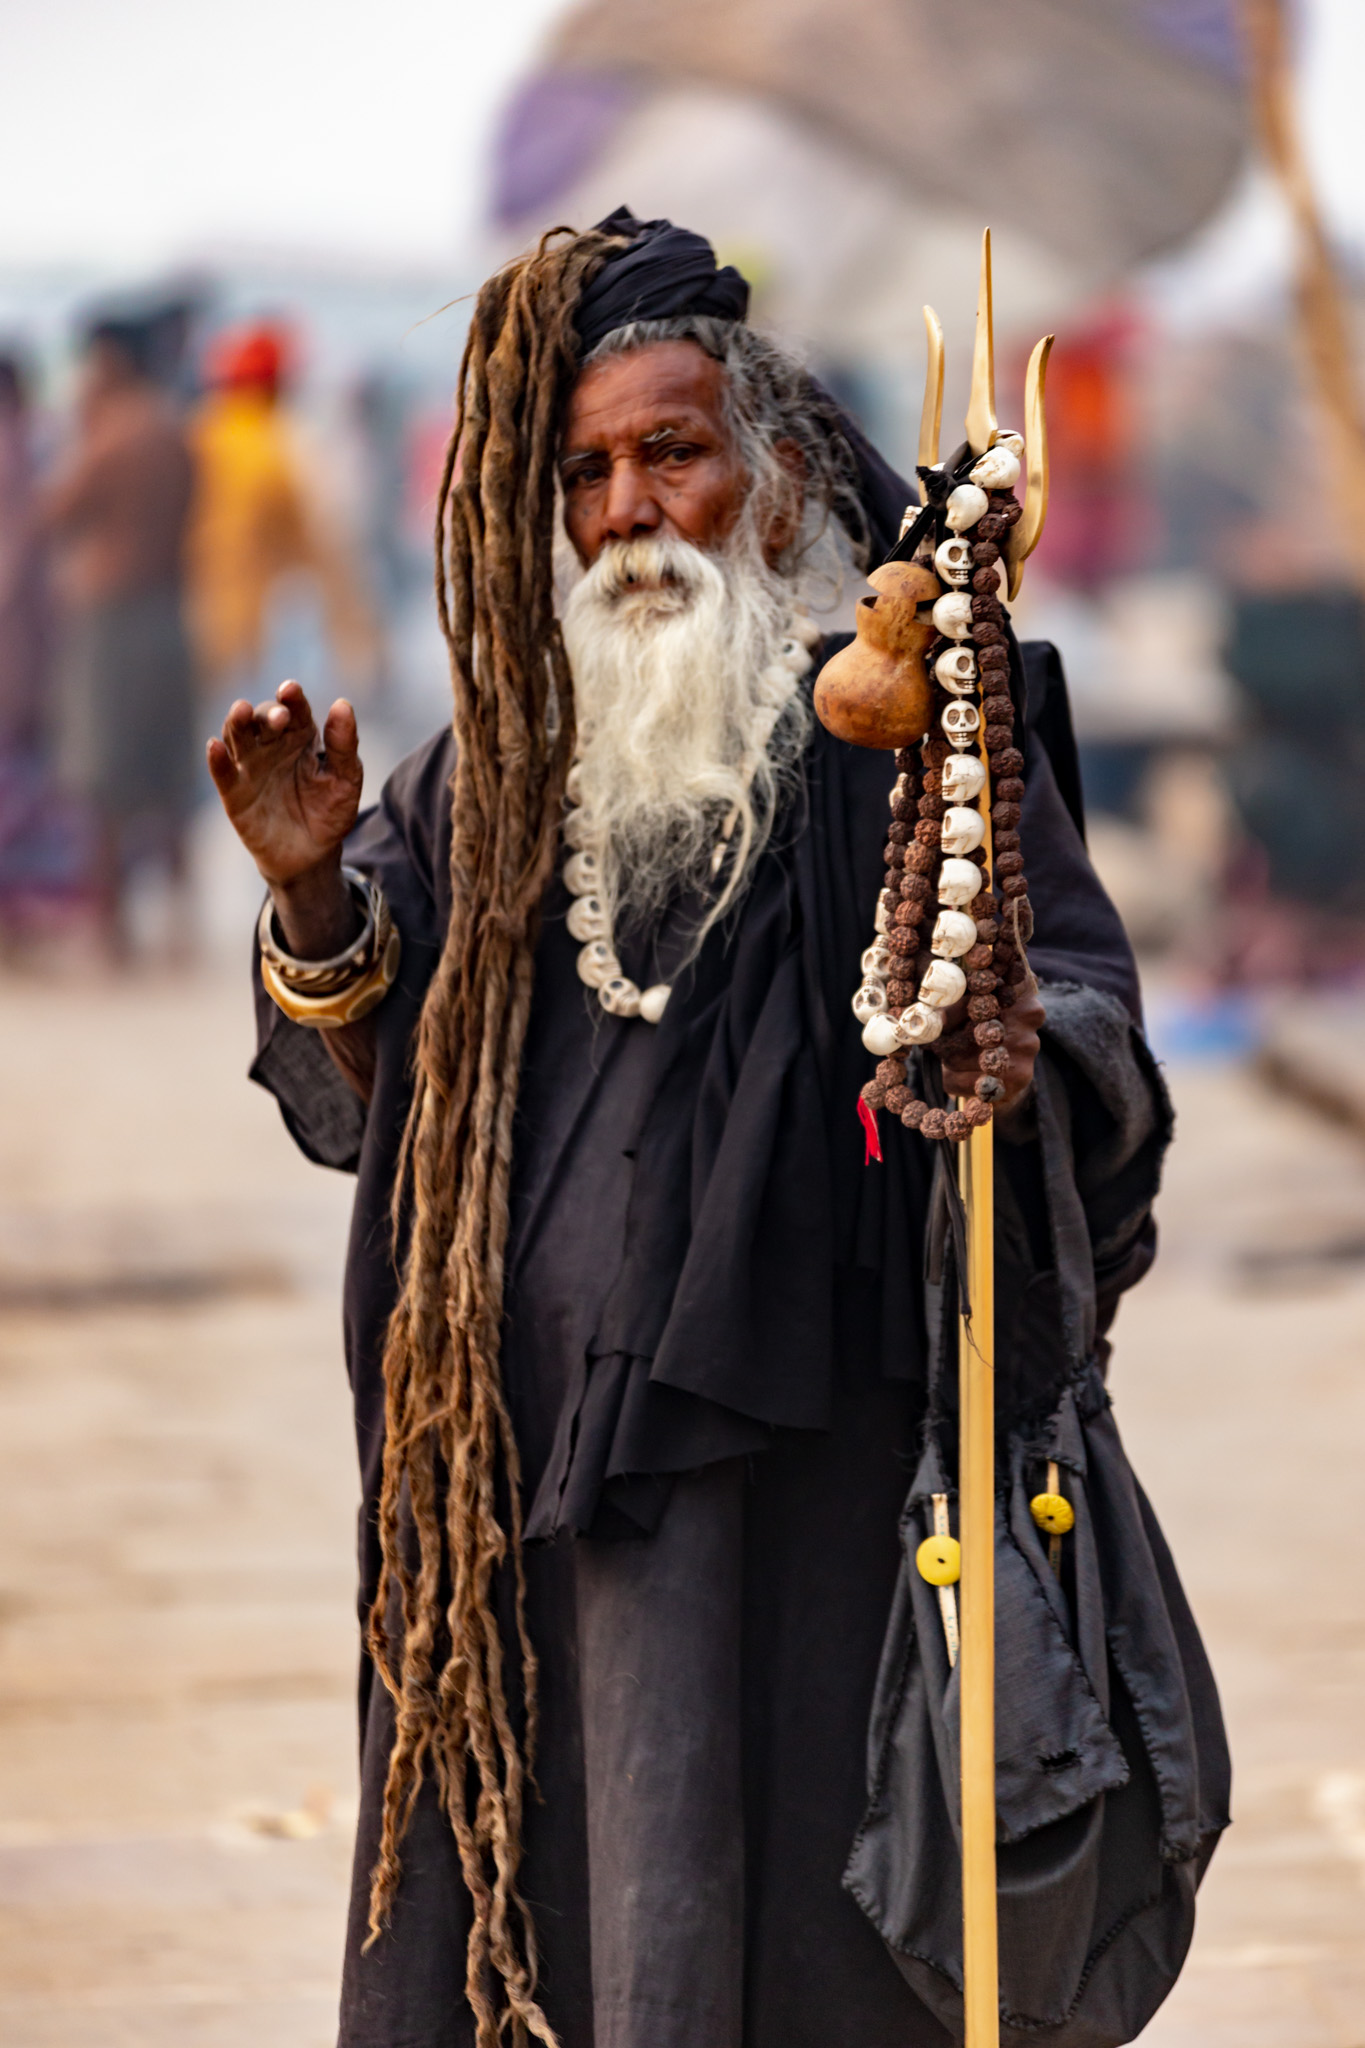 Indian Sadhu in full costume with staff.